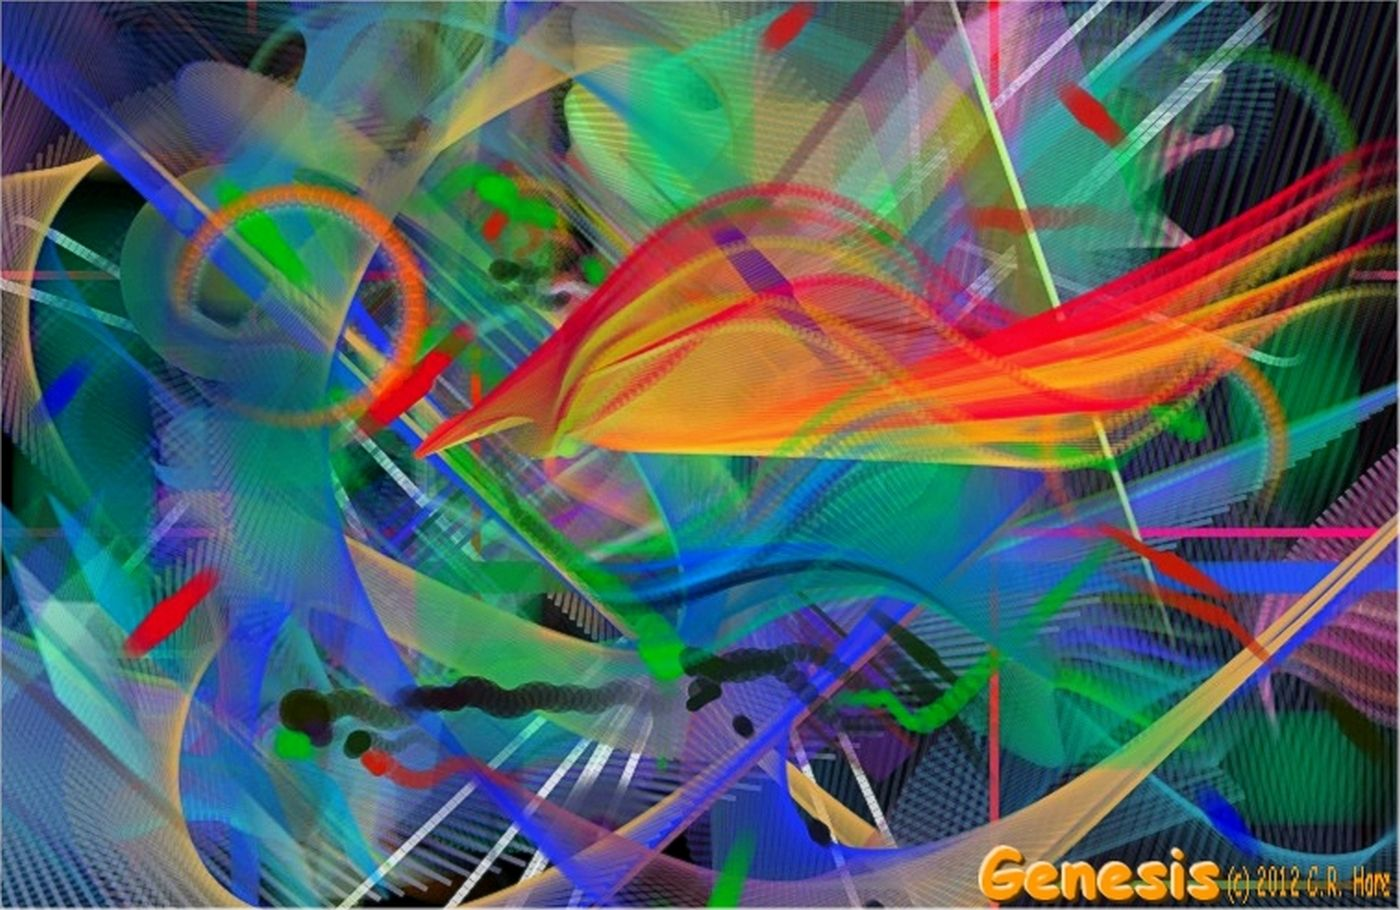 Used For My Genesis Instrumental Piece Available At Google Play My Artist Name There Is W1z11 Original Music Artist Names Genesis